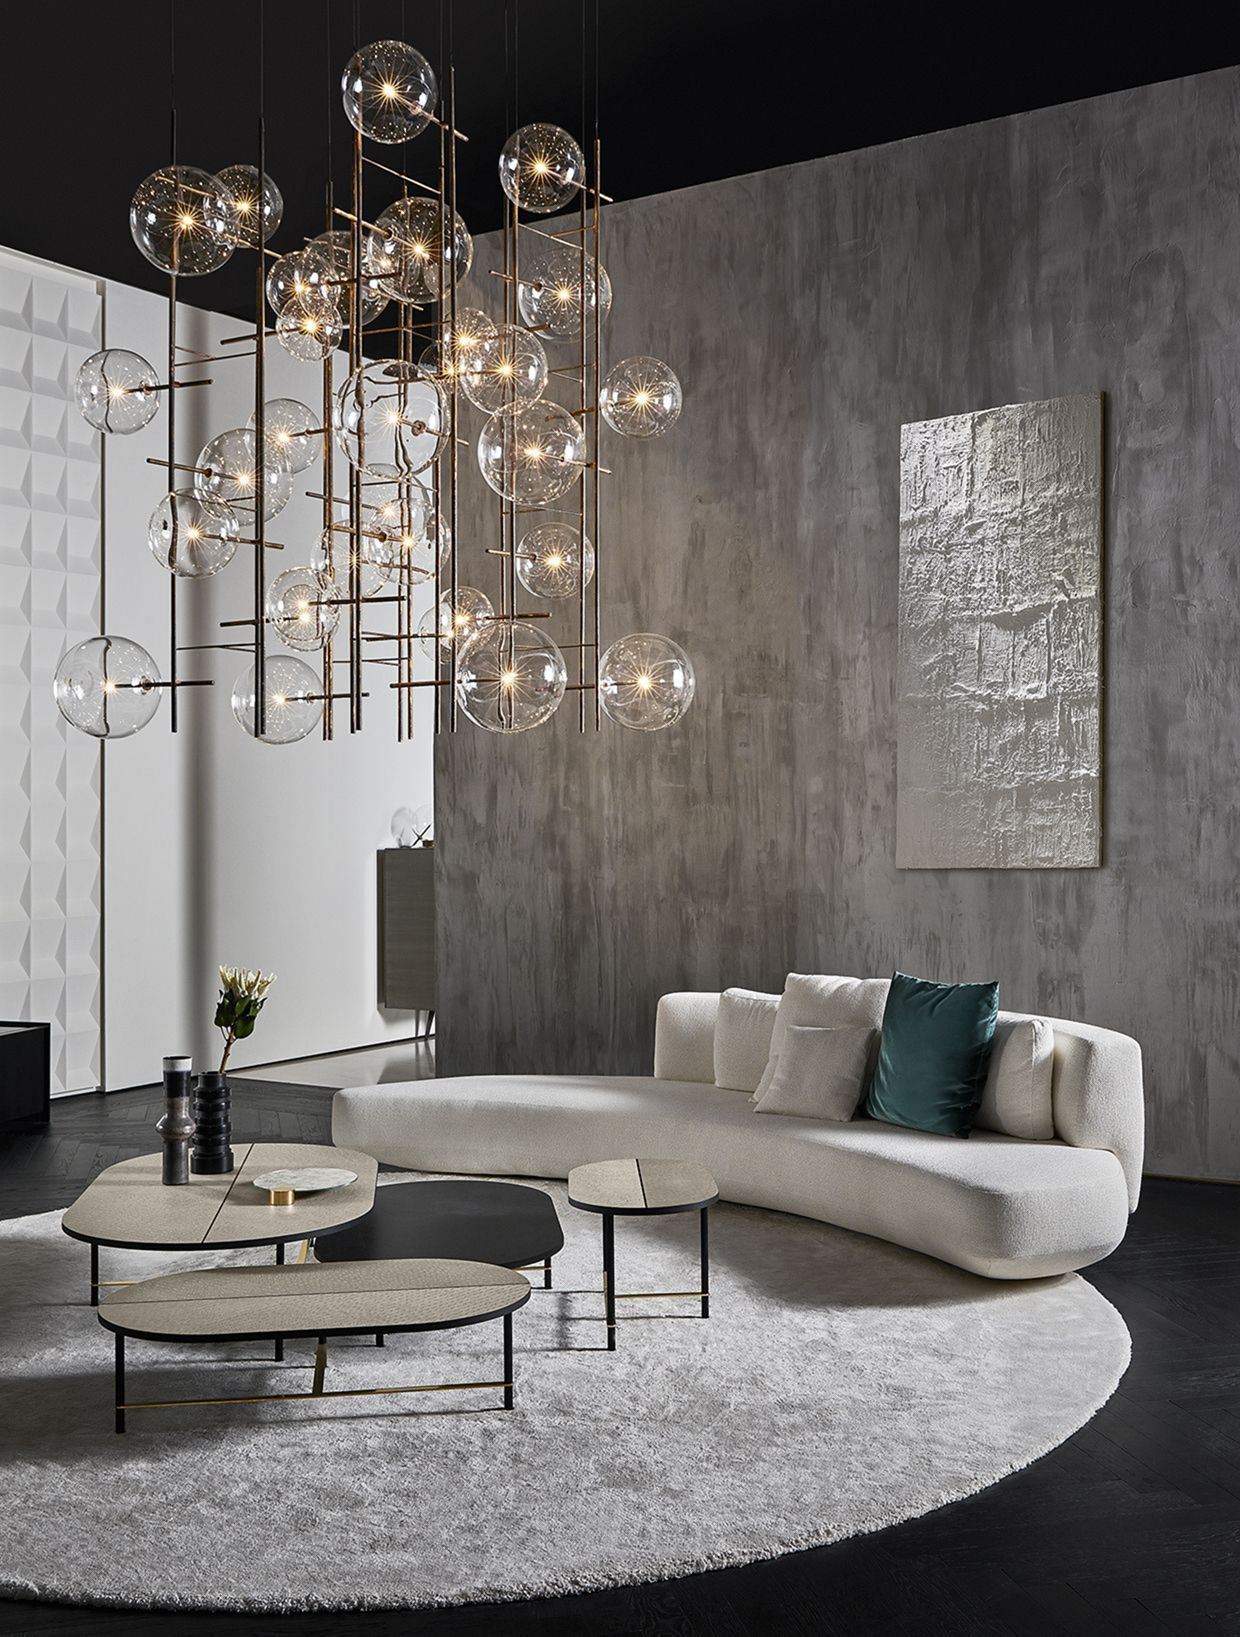 25 Elegant Minimalist Living Room Ideas For The Comfort Of You